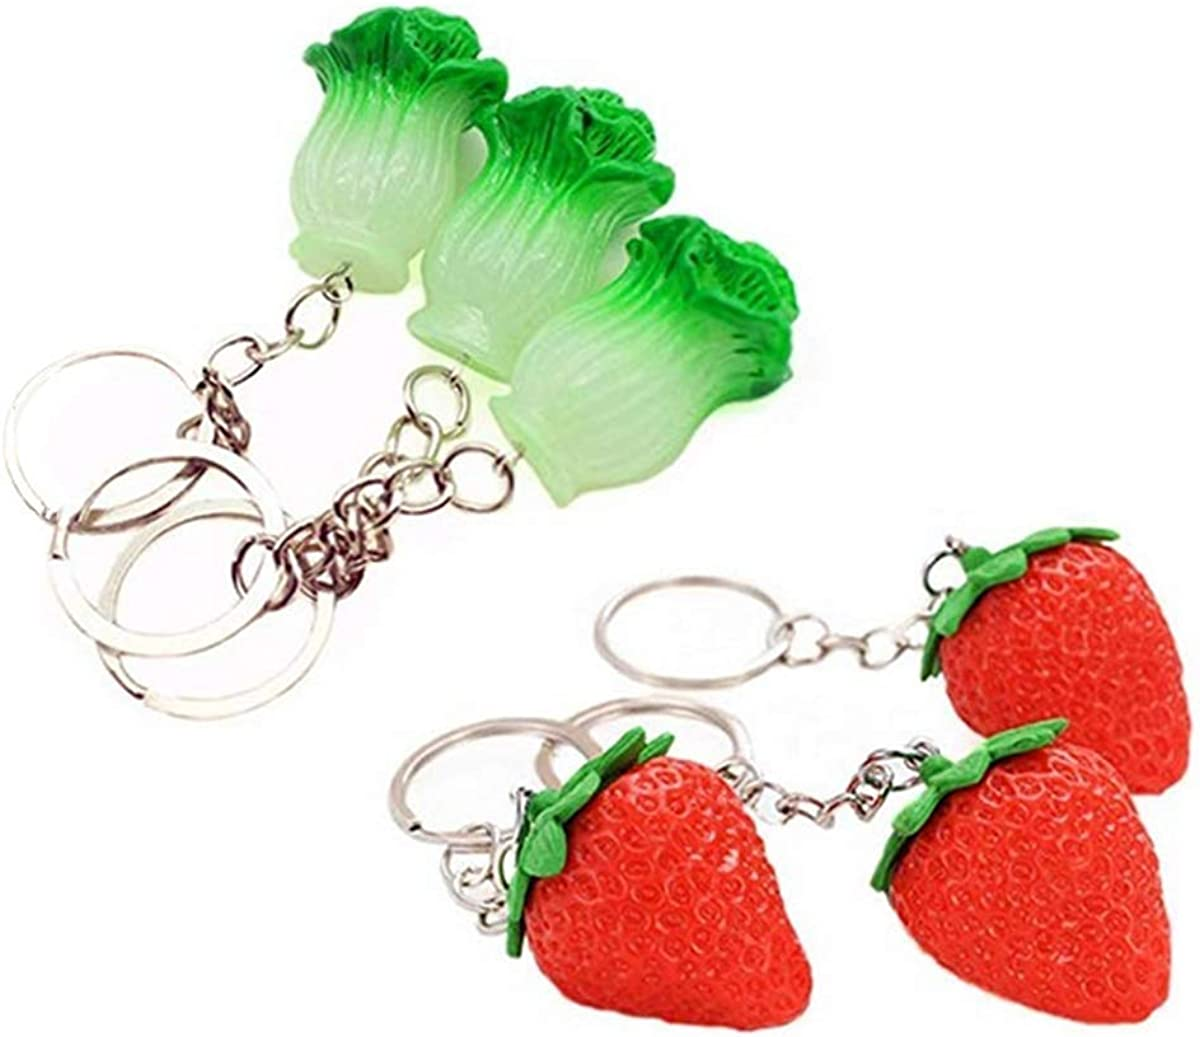 Funny live 6 Pcs Simulation Vegetables and Strawberrys Resin Keychains, Cute Creative Key Chain Key Ring Car Key Chain for Kids Adults, Backpack Pendant Wallet Phone Decor